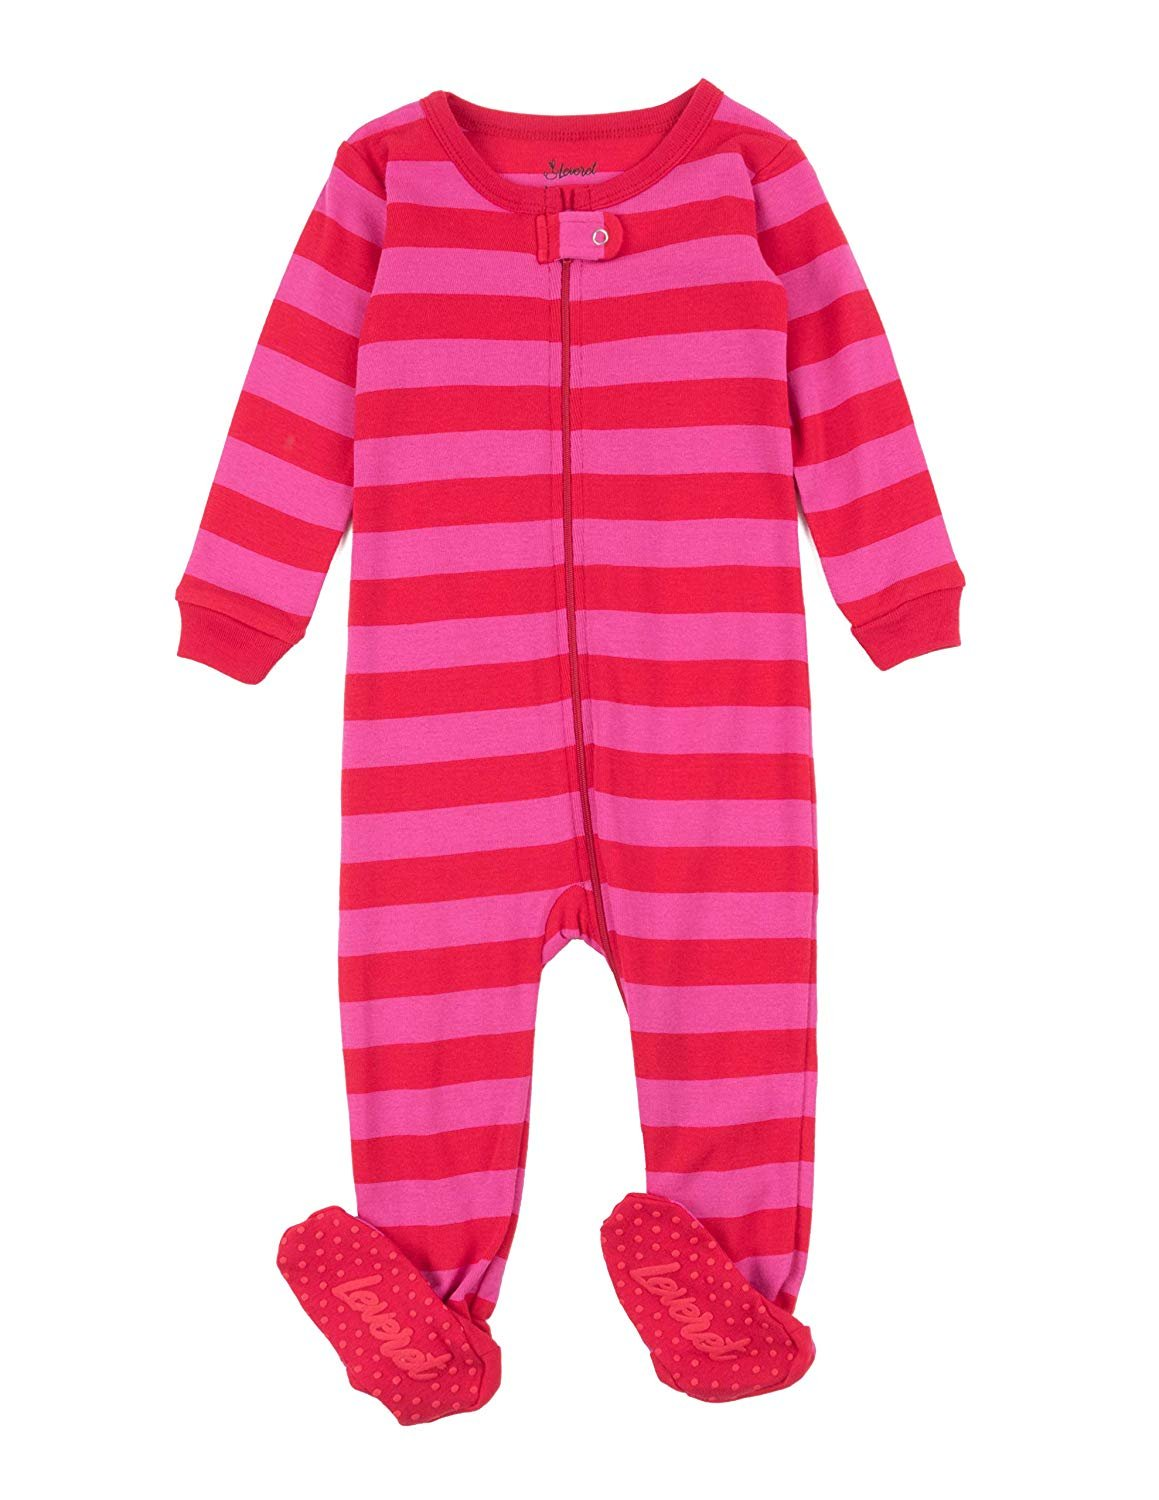 Leveret Kids Pajamas Baby Boys Girls Footed Pajamas Sleeper 100% Cotton (Red/Pink, Size 18-24 Months)